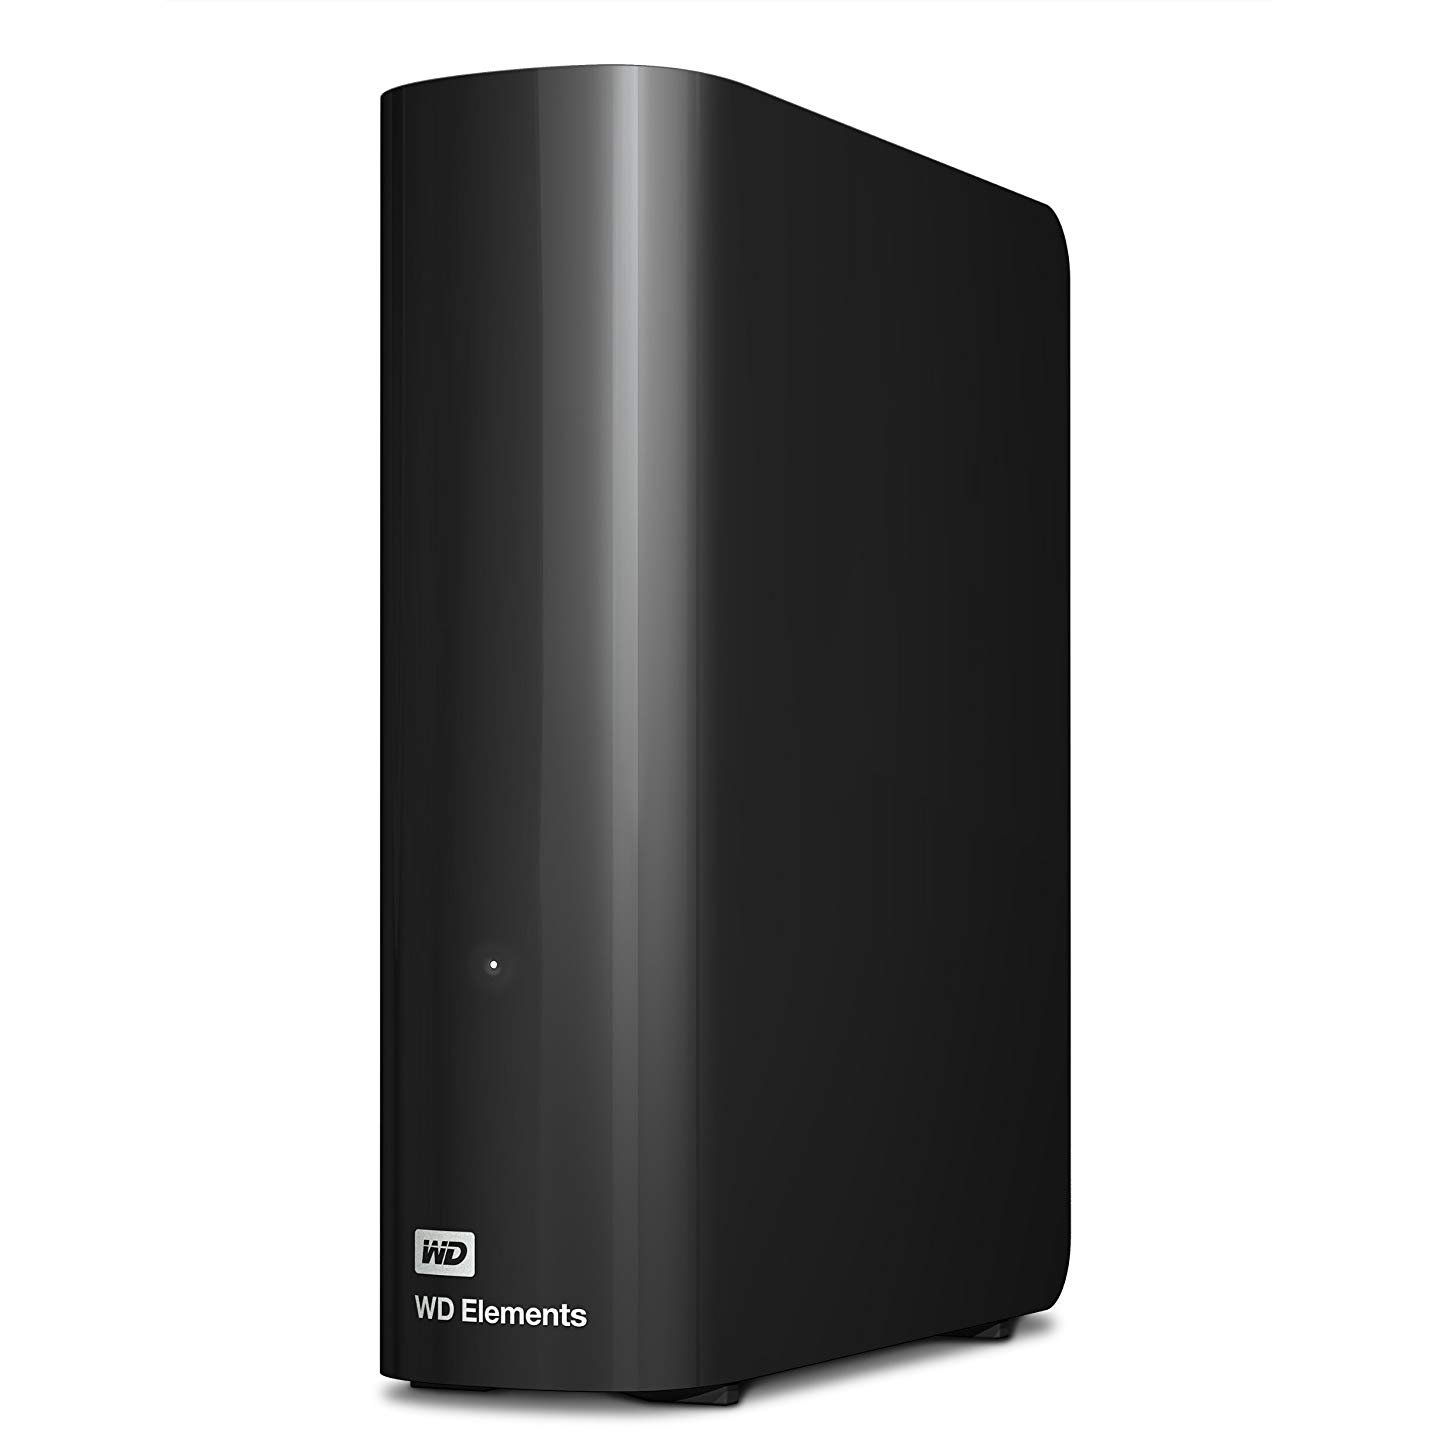 Original Western Digital Elements Desktop 4TB Black USB 3.0 External Hard Drive (WDBWLG0040HBK-EESN)